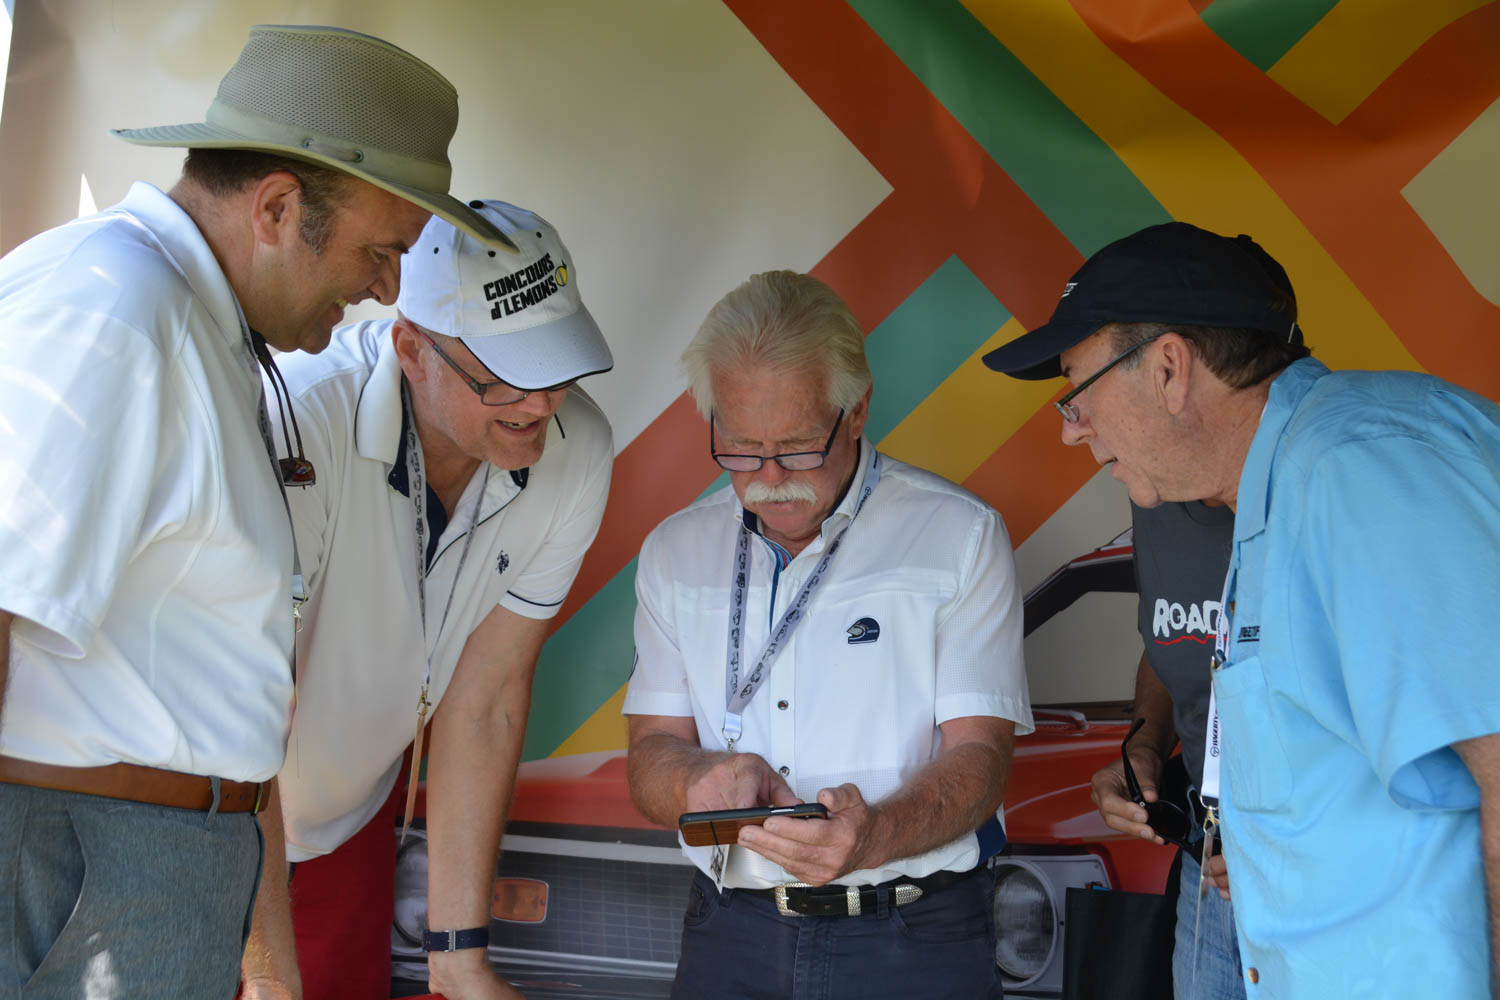 Hagerty's Doug Clark (l) confers with Concours d'Lemons Head Gasket, Alan Galbraith (white hat), Chasing Classic Cars host Wayne Carini (mustache) and tuning legend Ken Lingenfelter (r) about the finer points of picking a Worst of Show winning car.